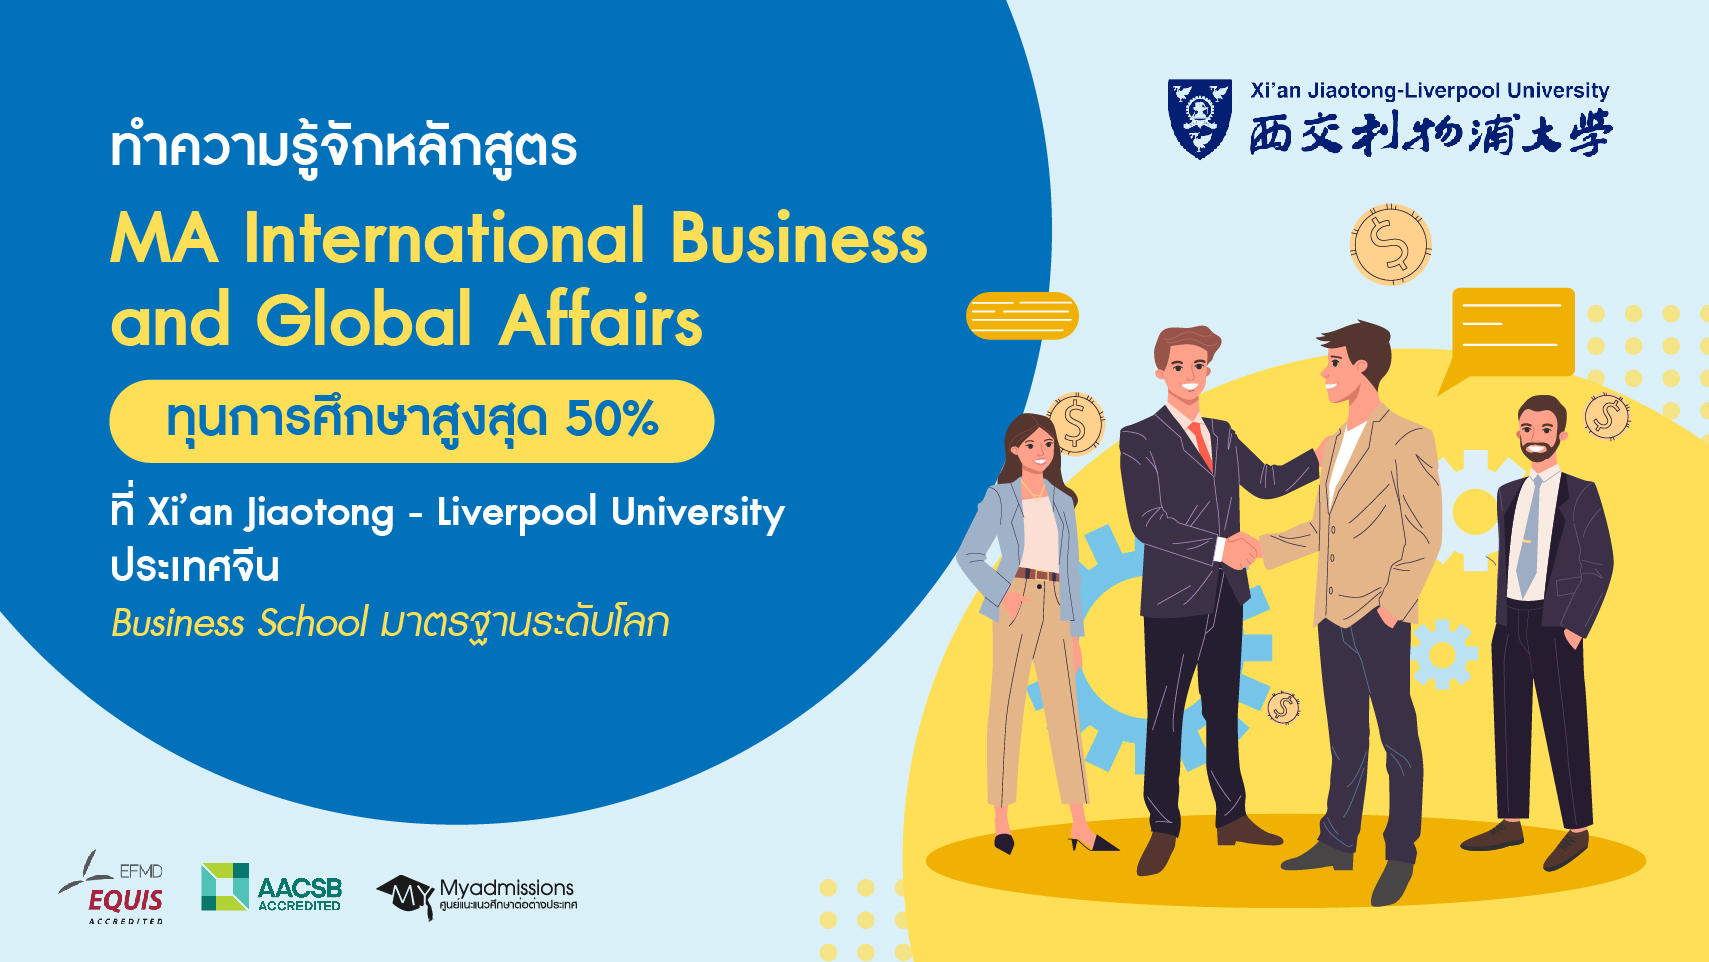 MA International Business and Global Affairs